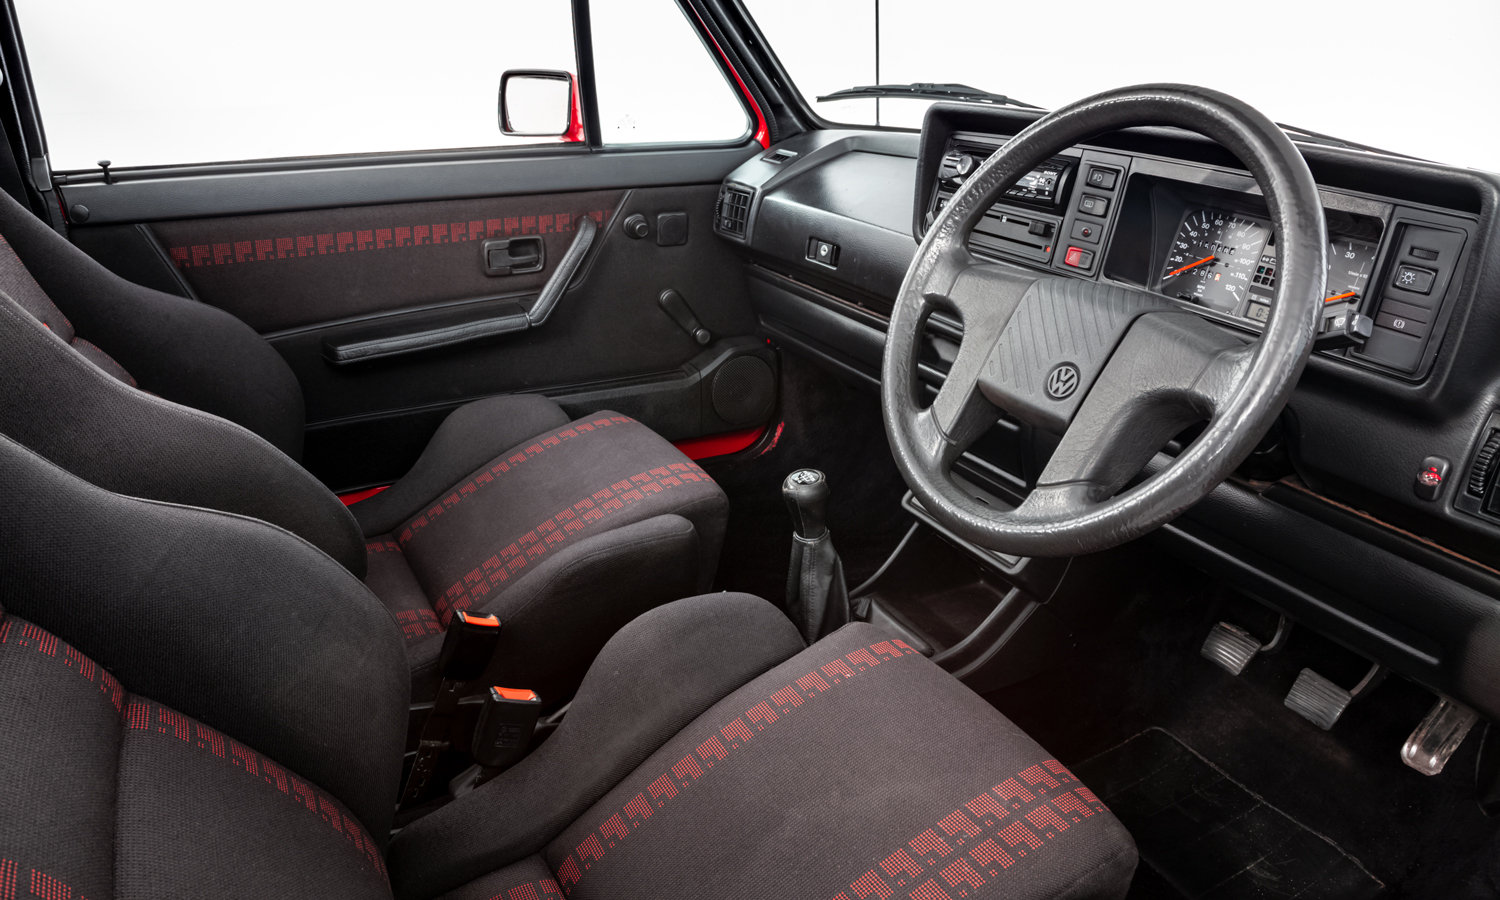 1993 Volkswagen Golf MK1 GTI SPORTLINE - Stunning, Rare For Sale (picture 6 of 6)